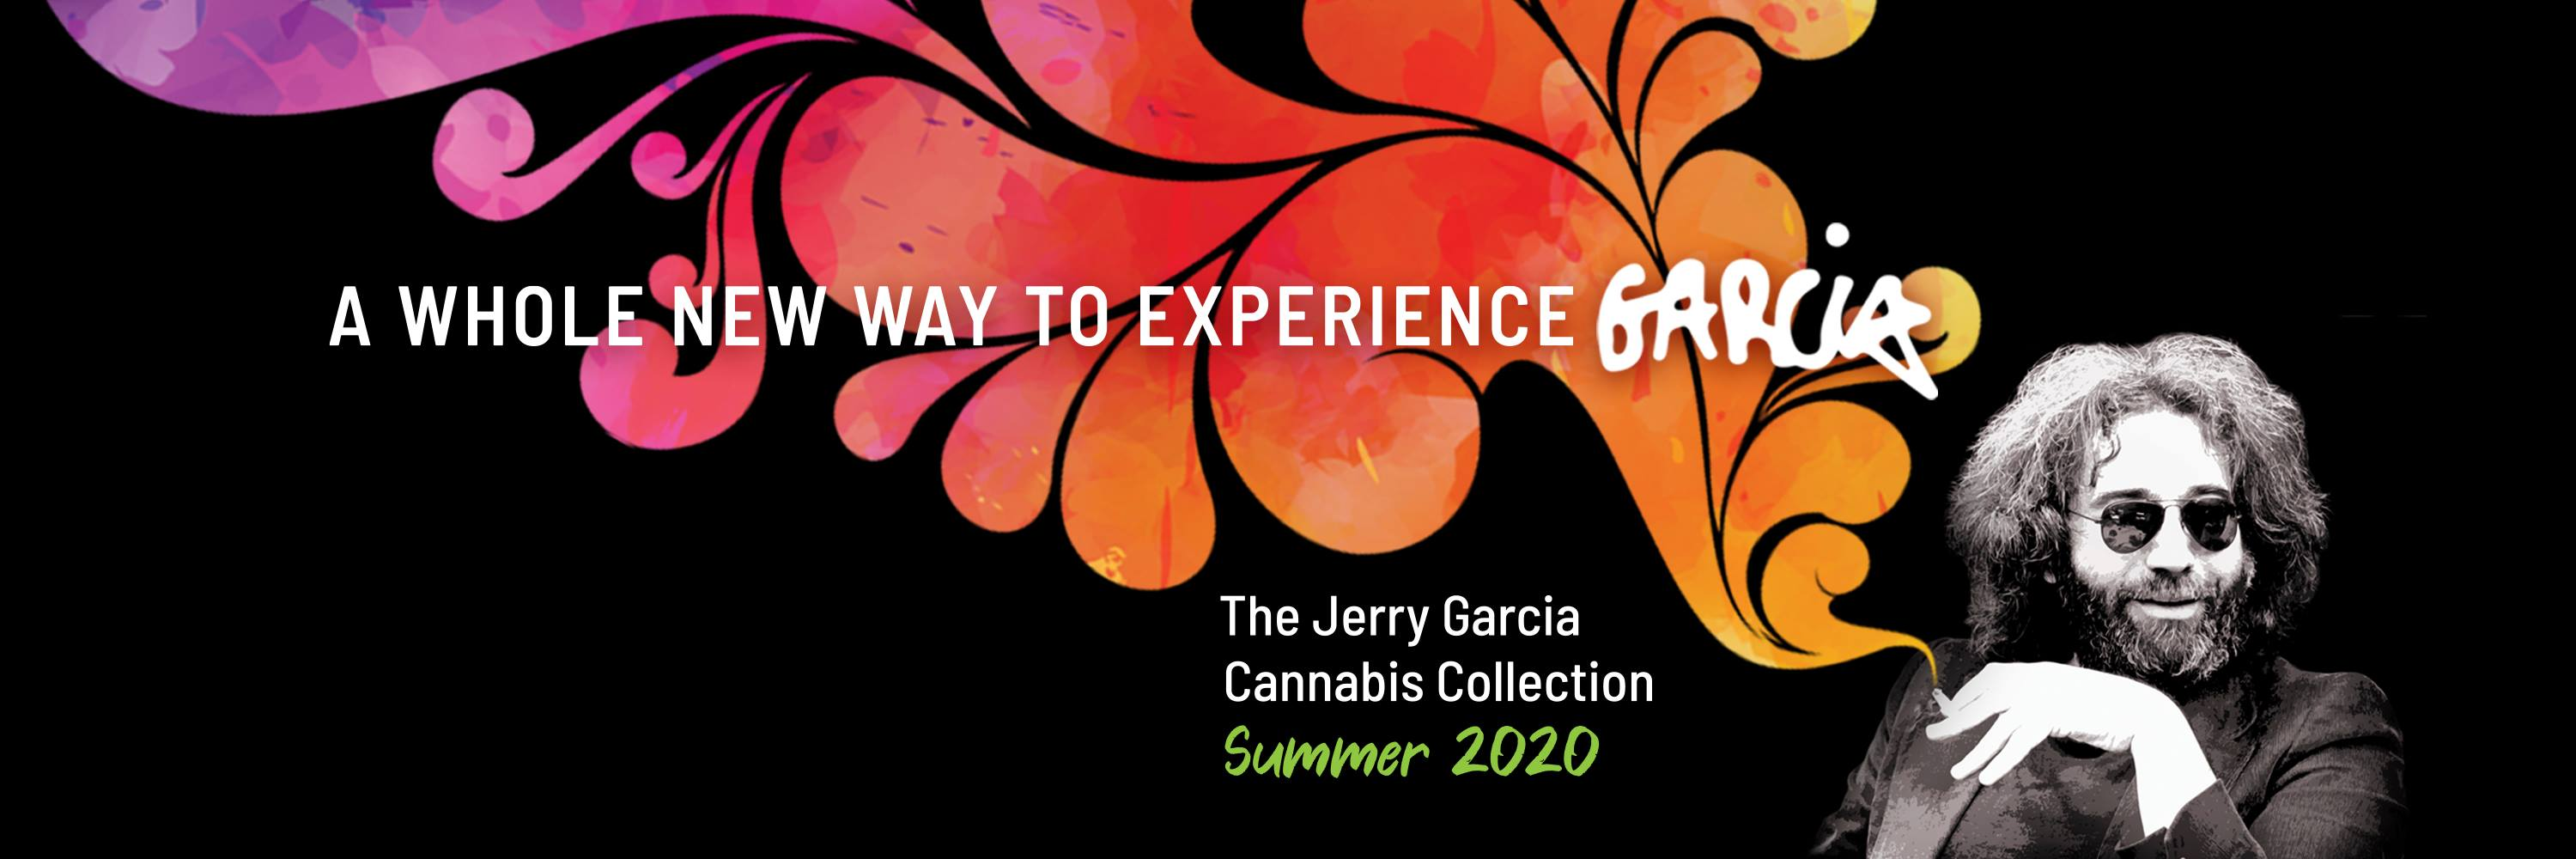 The Jerry Garcia Family & Holistic Industries Team Up for New Cannabis Brand